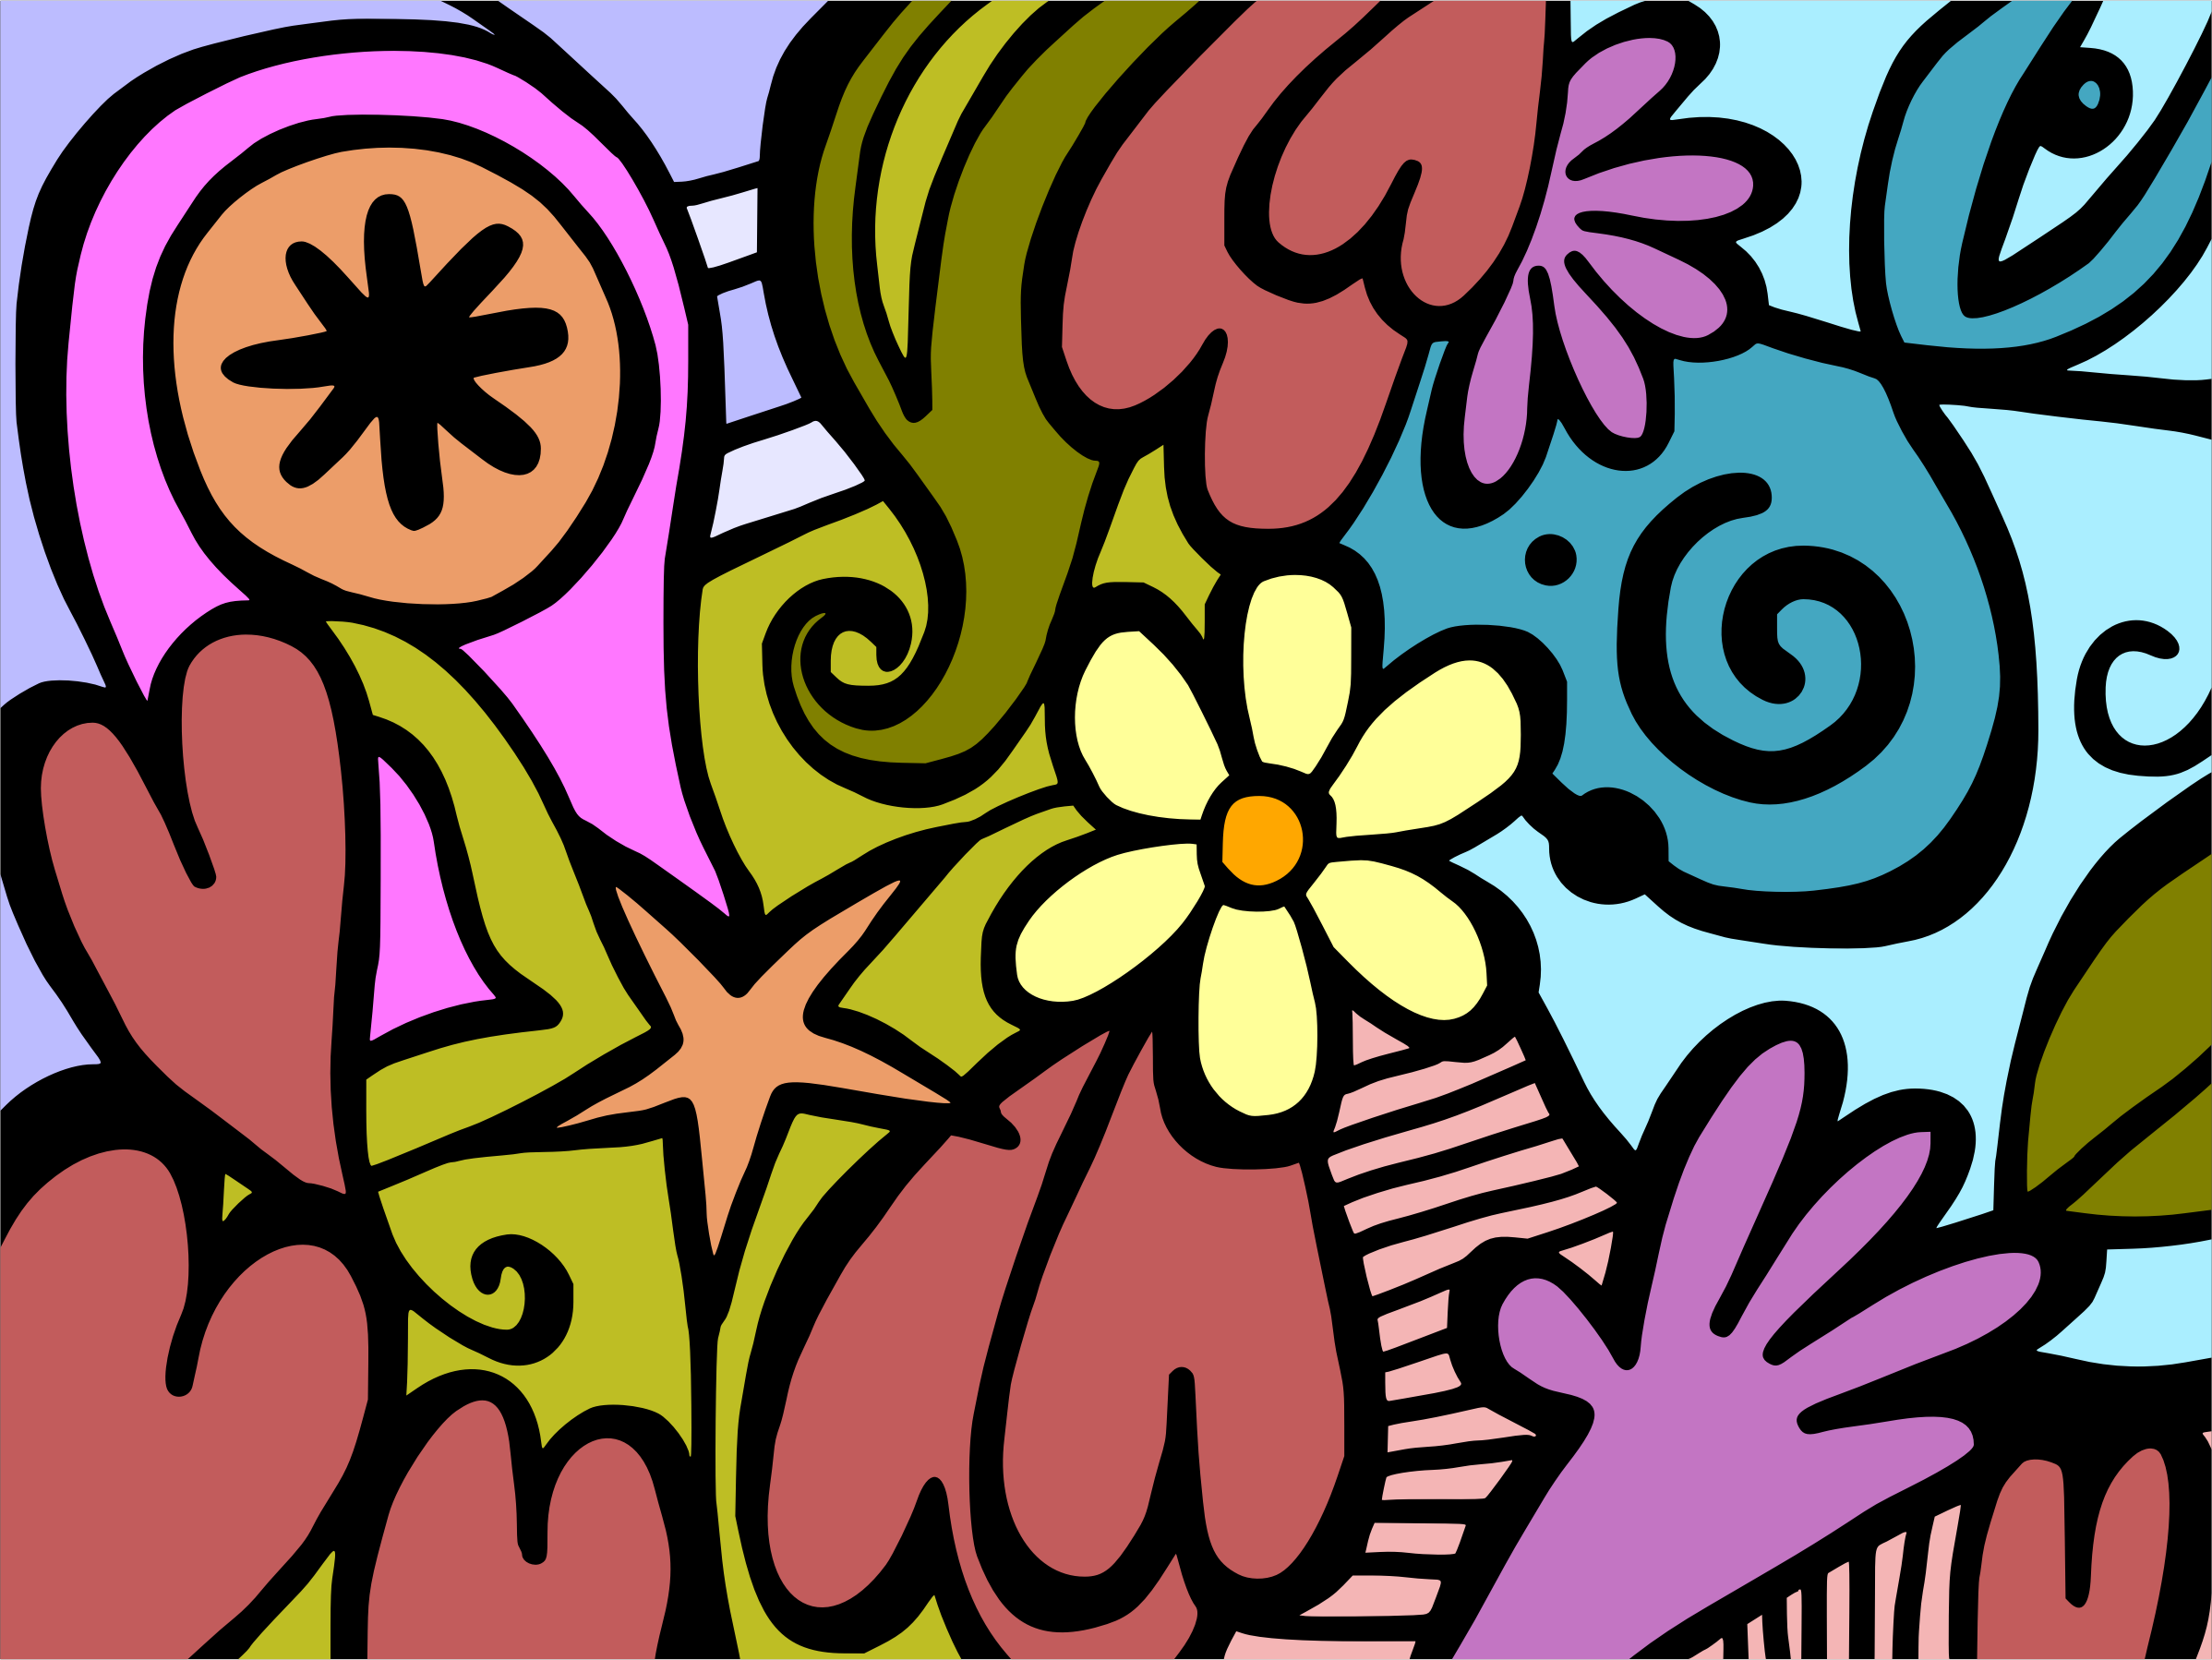 Background pattern 211 (colour 2) by Firkin